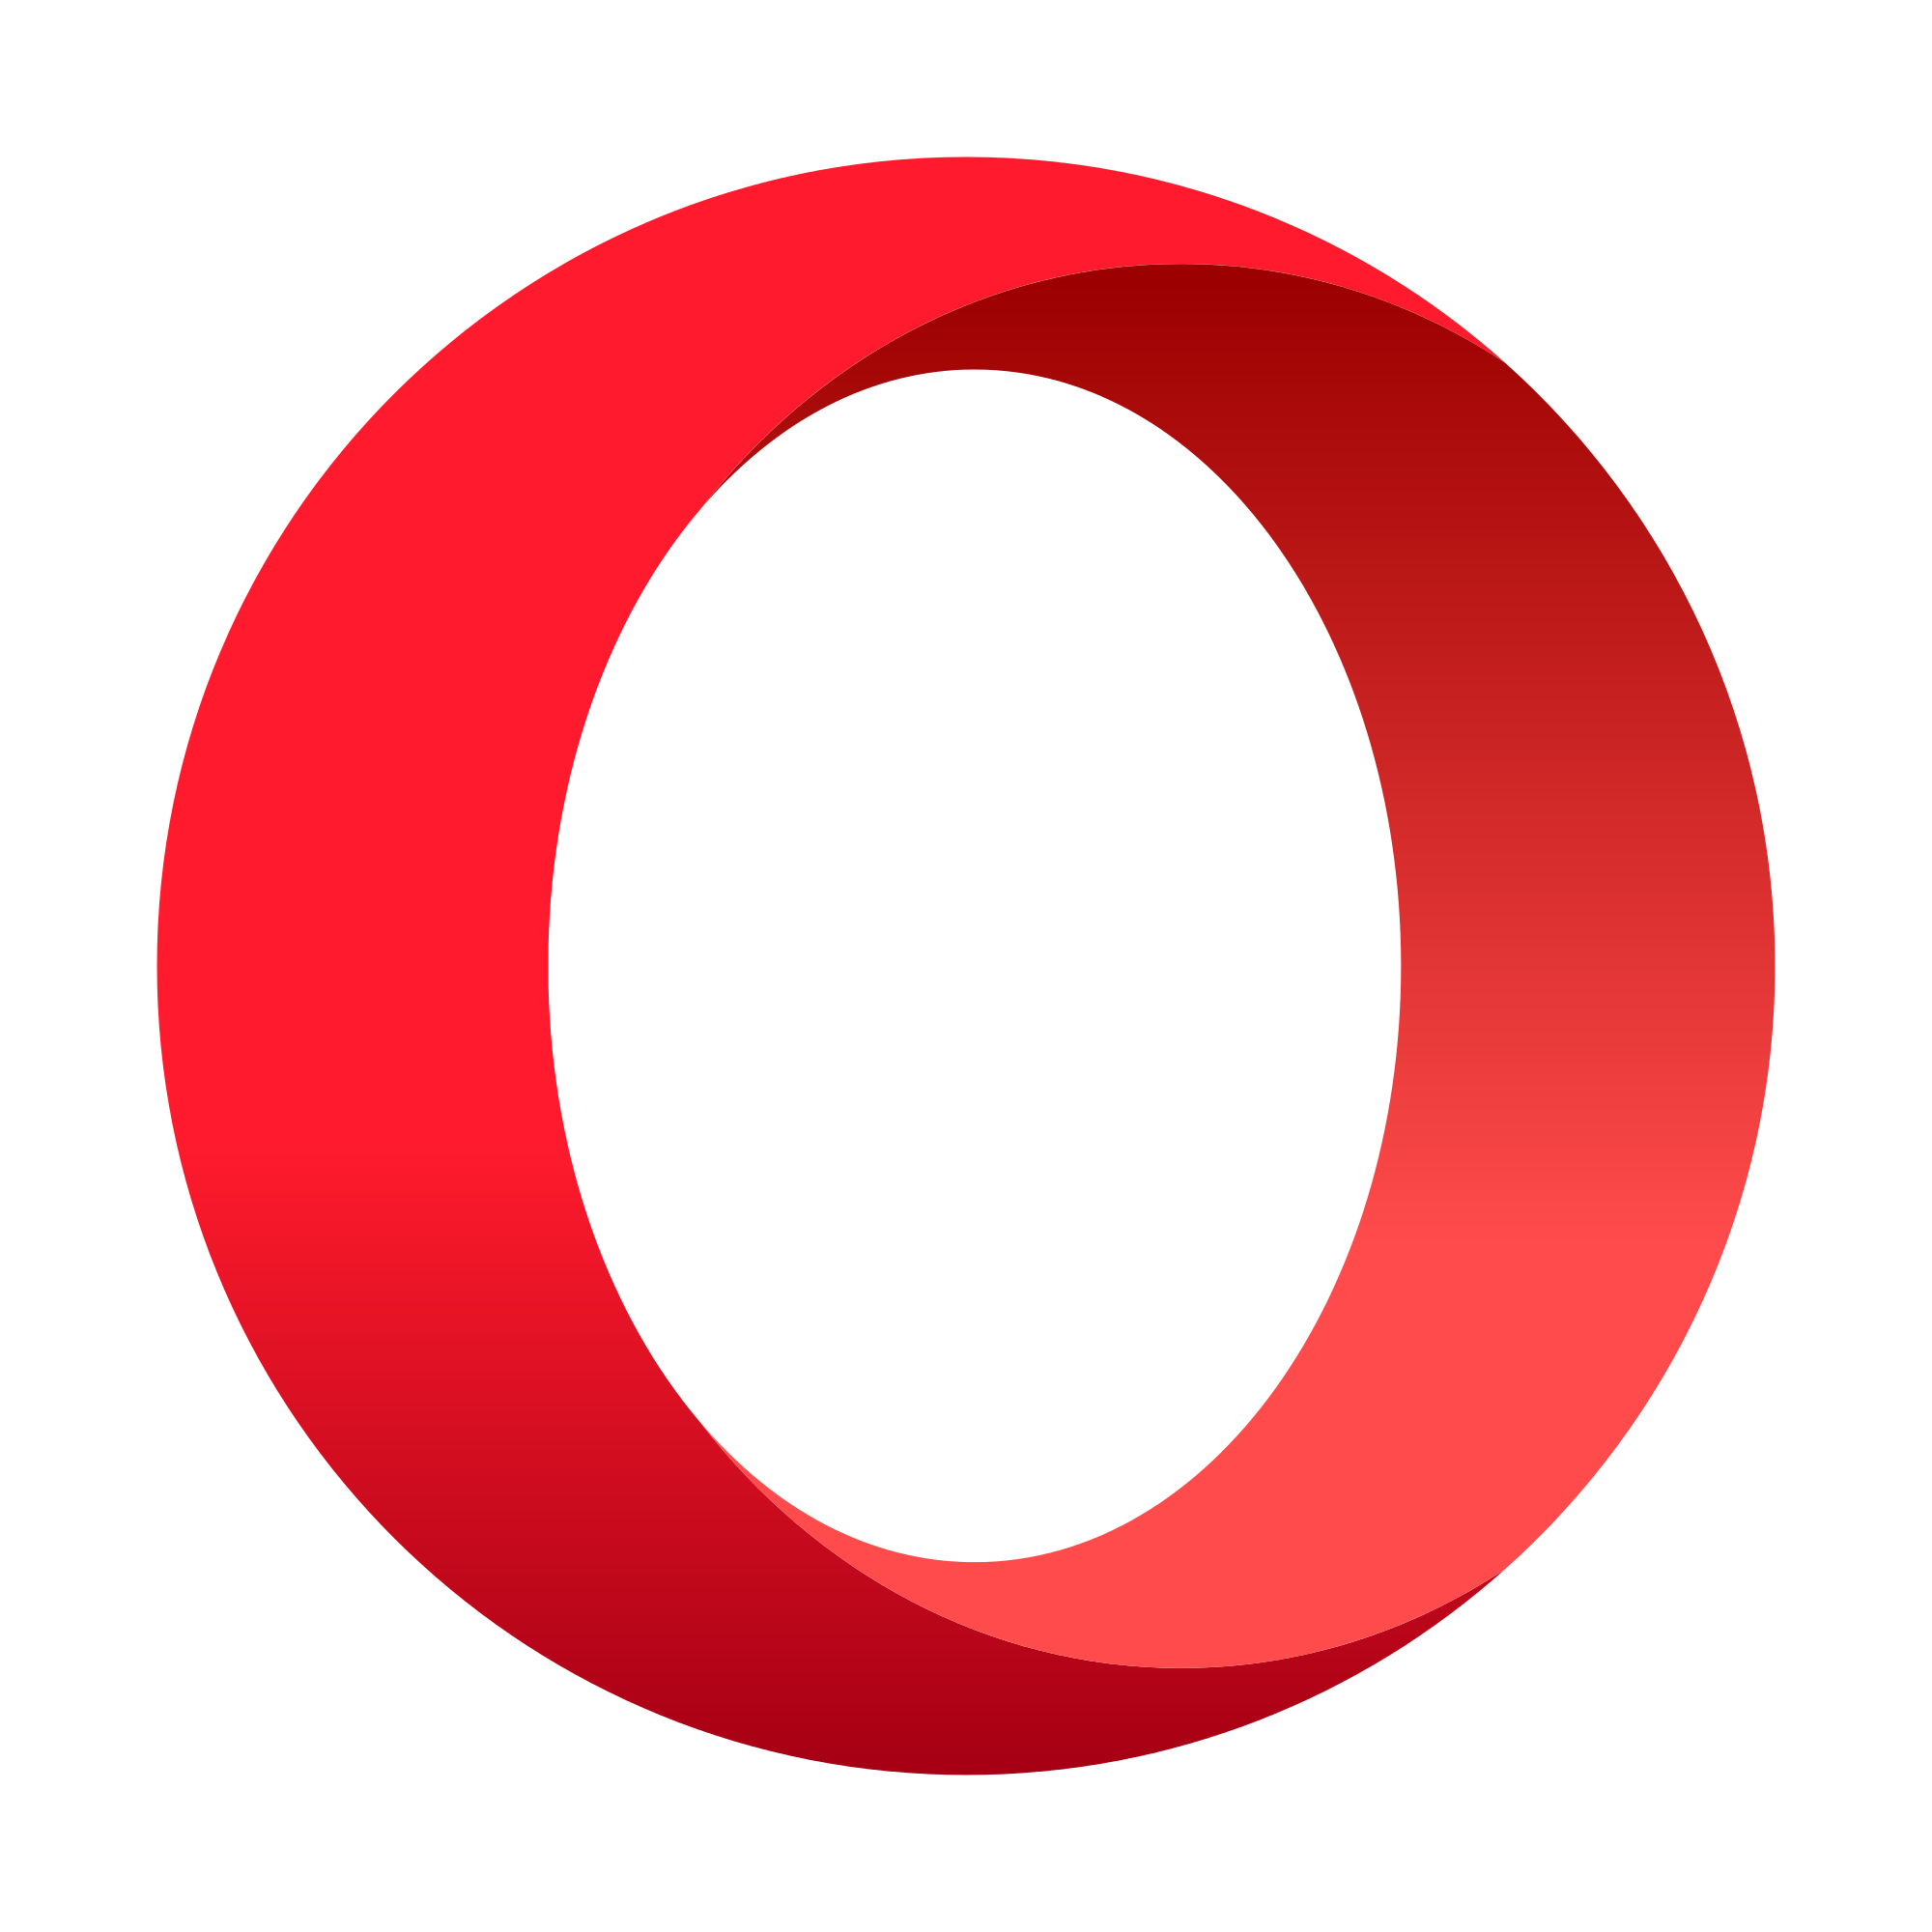 Opera Browser images Opera icon HD wallpaper and ...